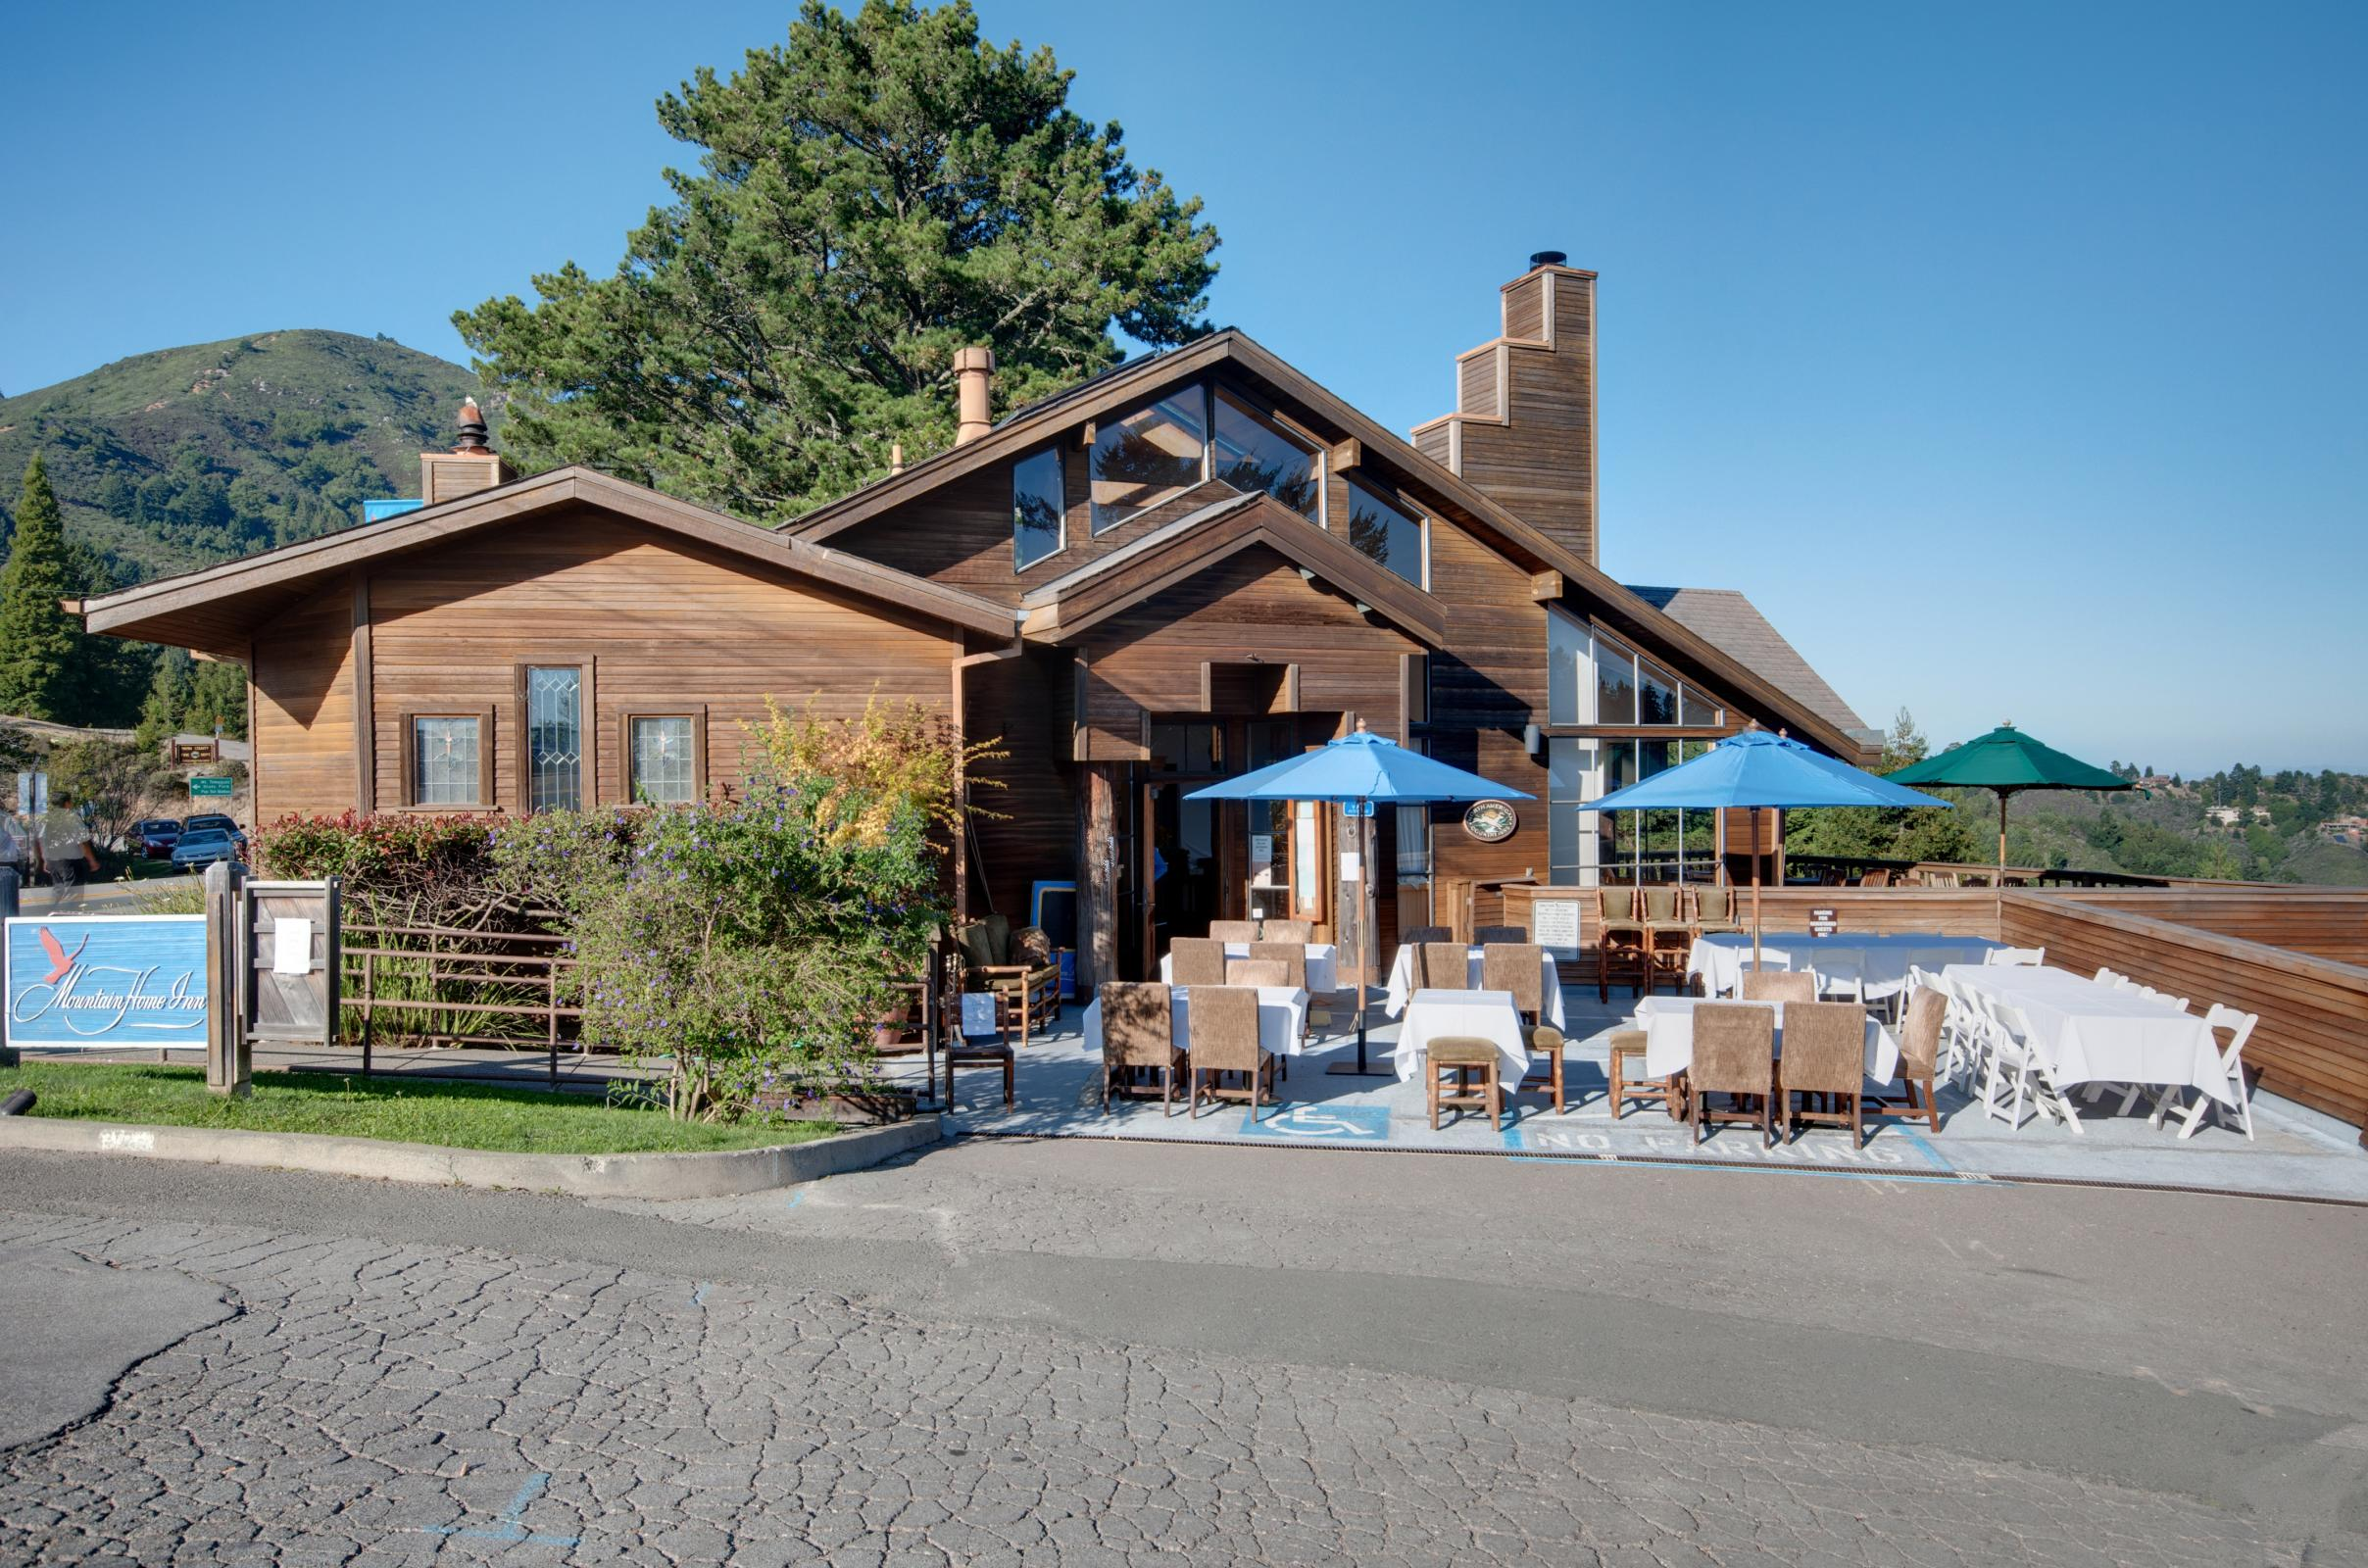 Mountain home inn 810 panoramic hwy mill valley ca 94941 for Homes in mill valley ca